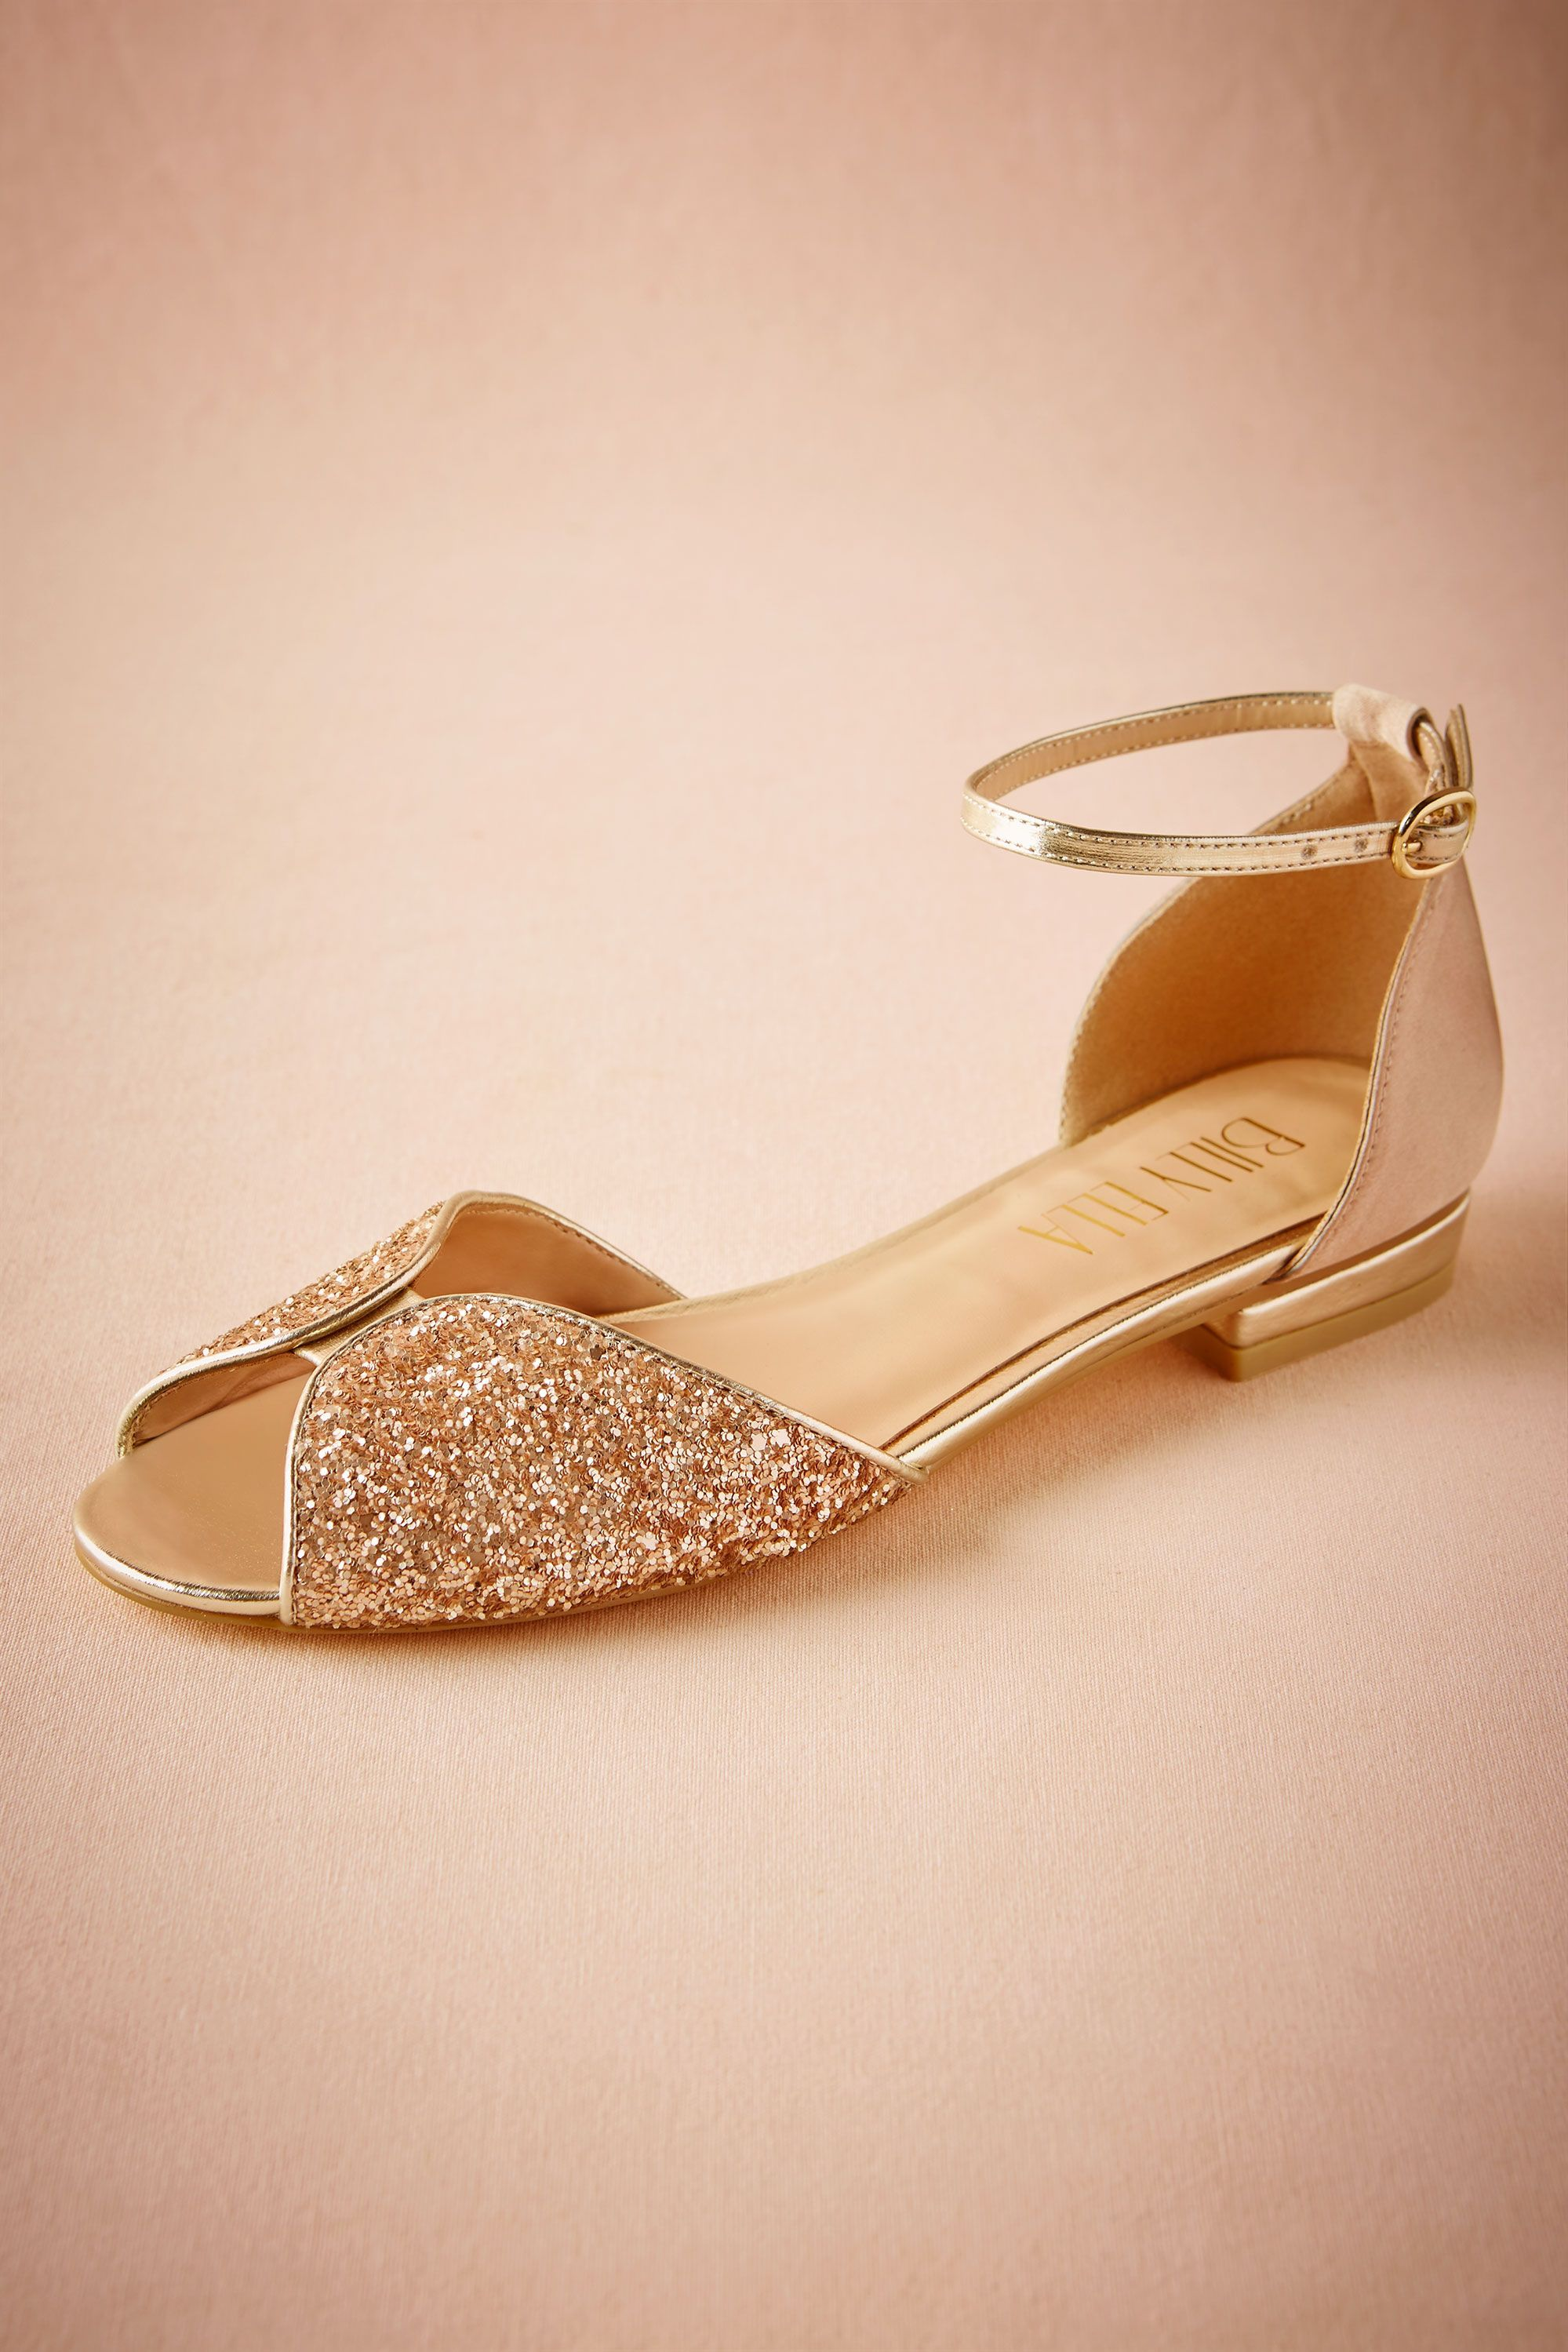 432ef10b3 BHLDN Jeni Flats in Shoes   Accessories Shoes